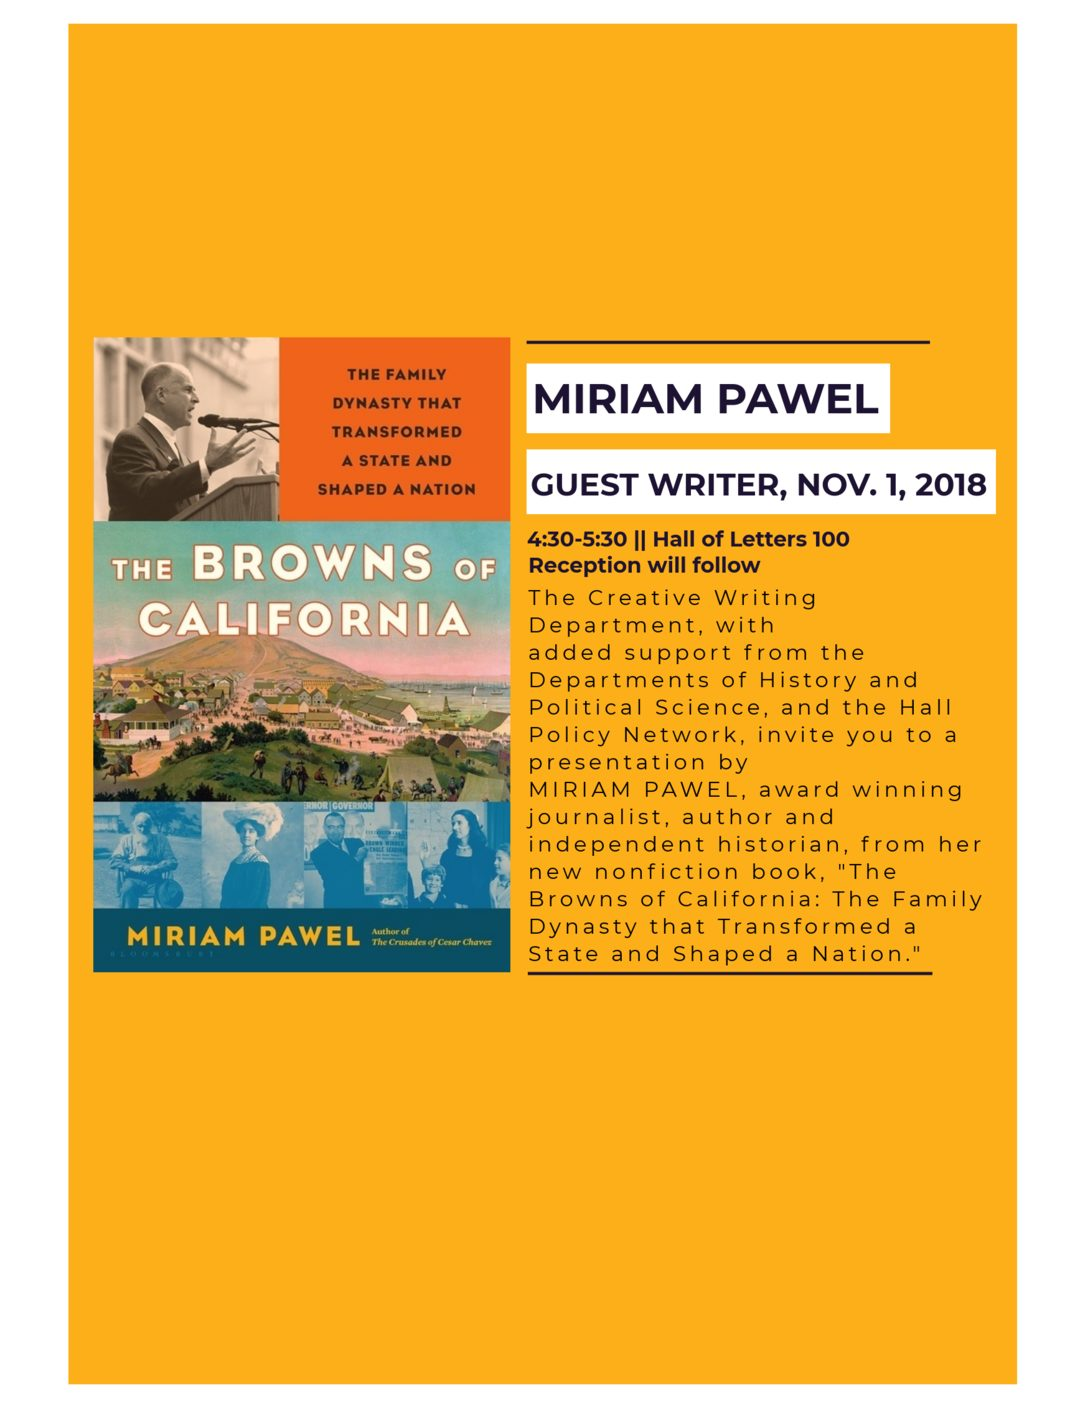 Miriam Pawel to Present from New Book, The Browns of California